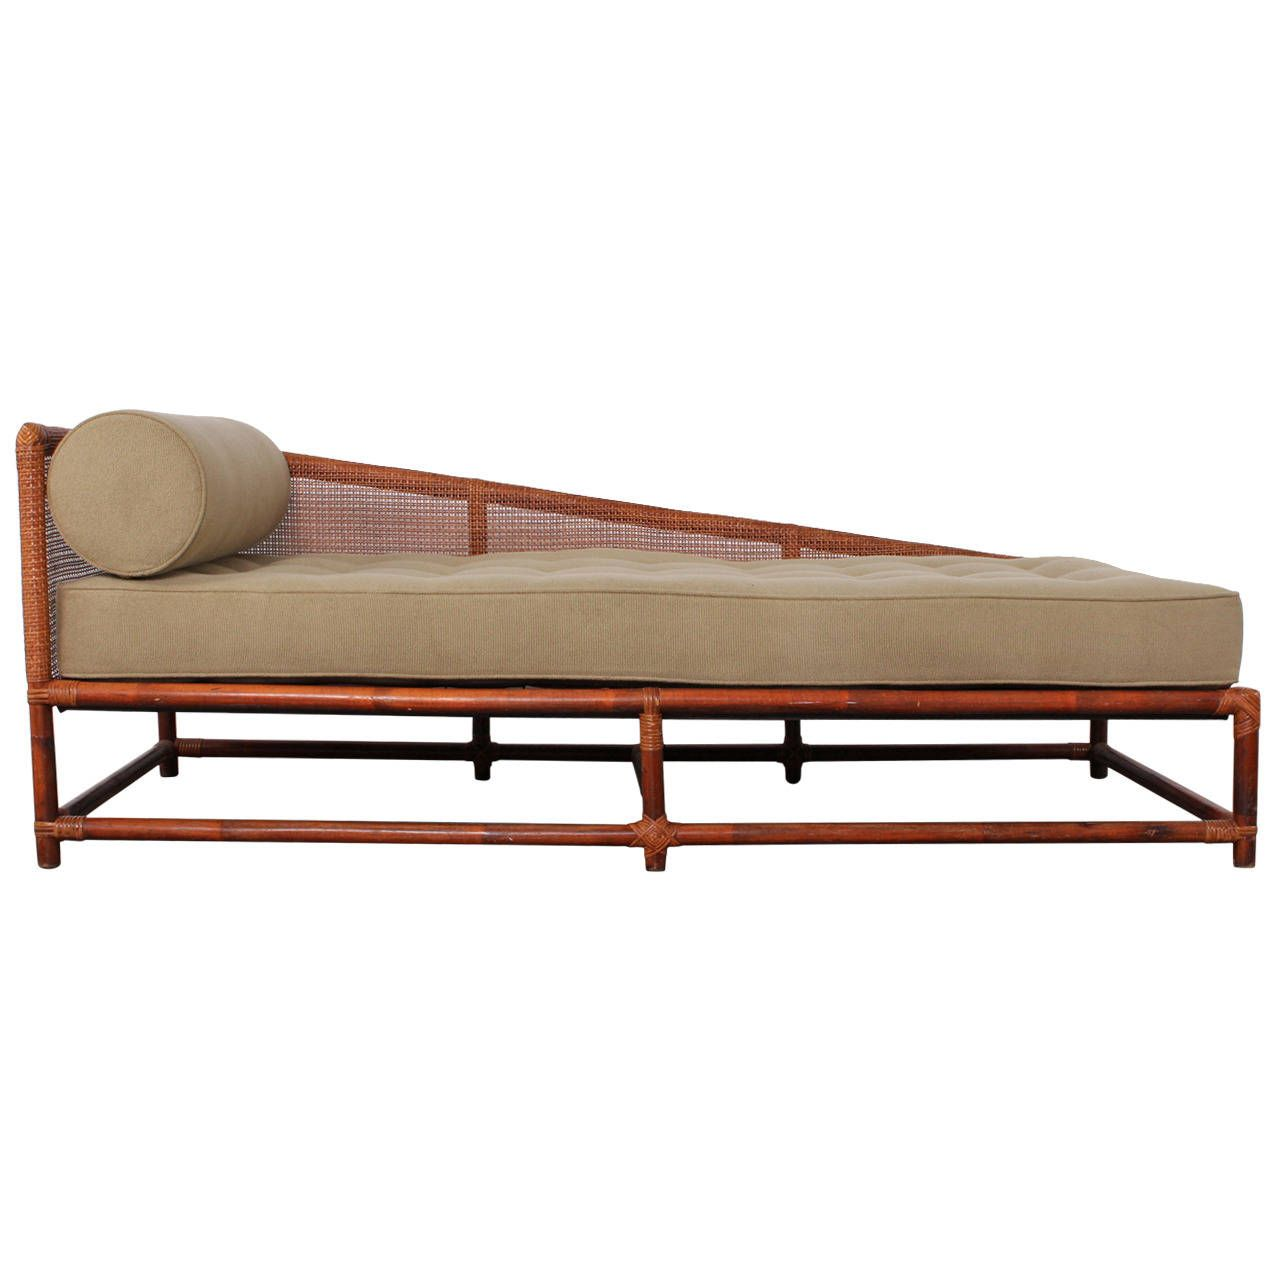 cane sofa bed leather world birmingham reviews daybed by tommi parzinger for willow and reed